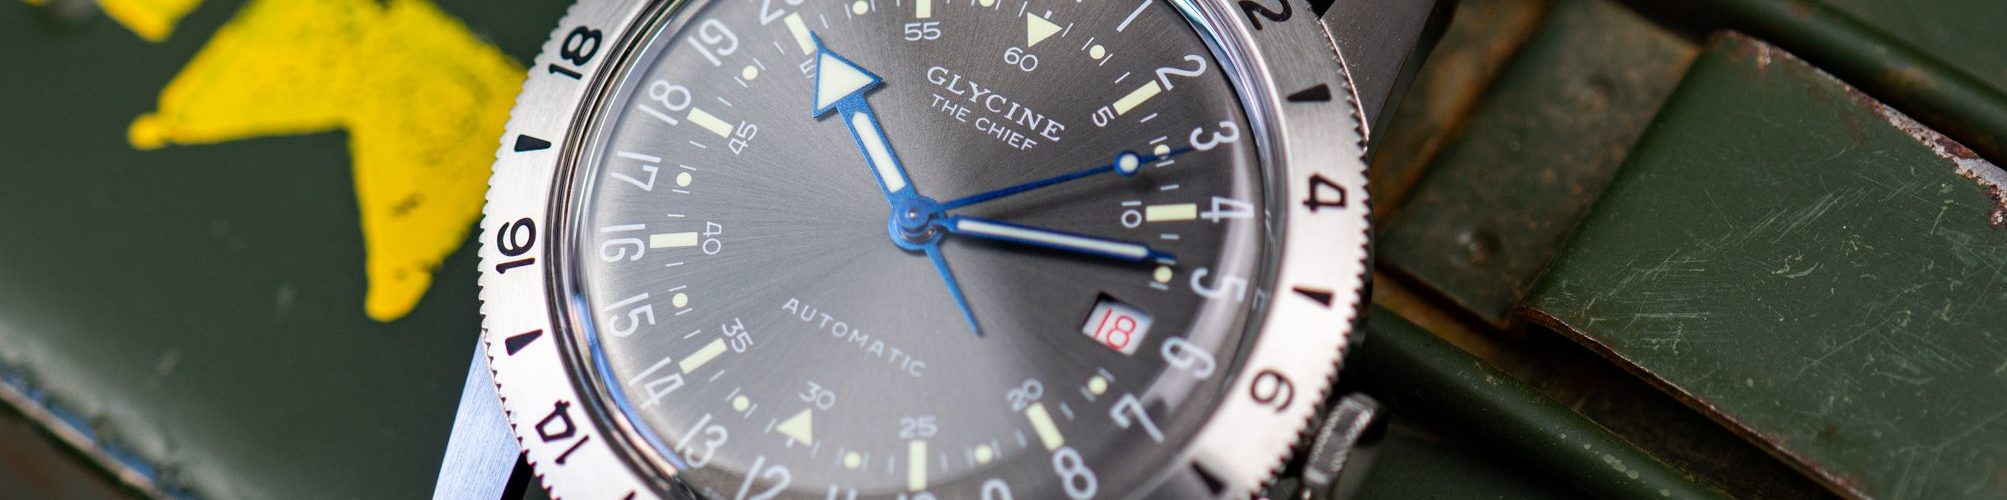 Glycine Airman Retro-Fliegeruhr Swiss Made Test Erfahrungen